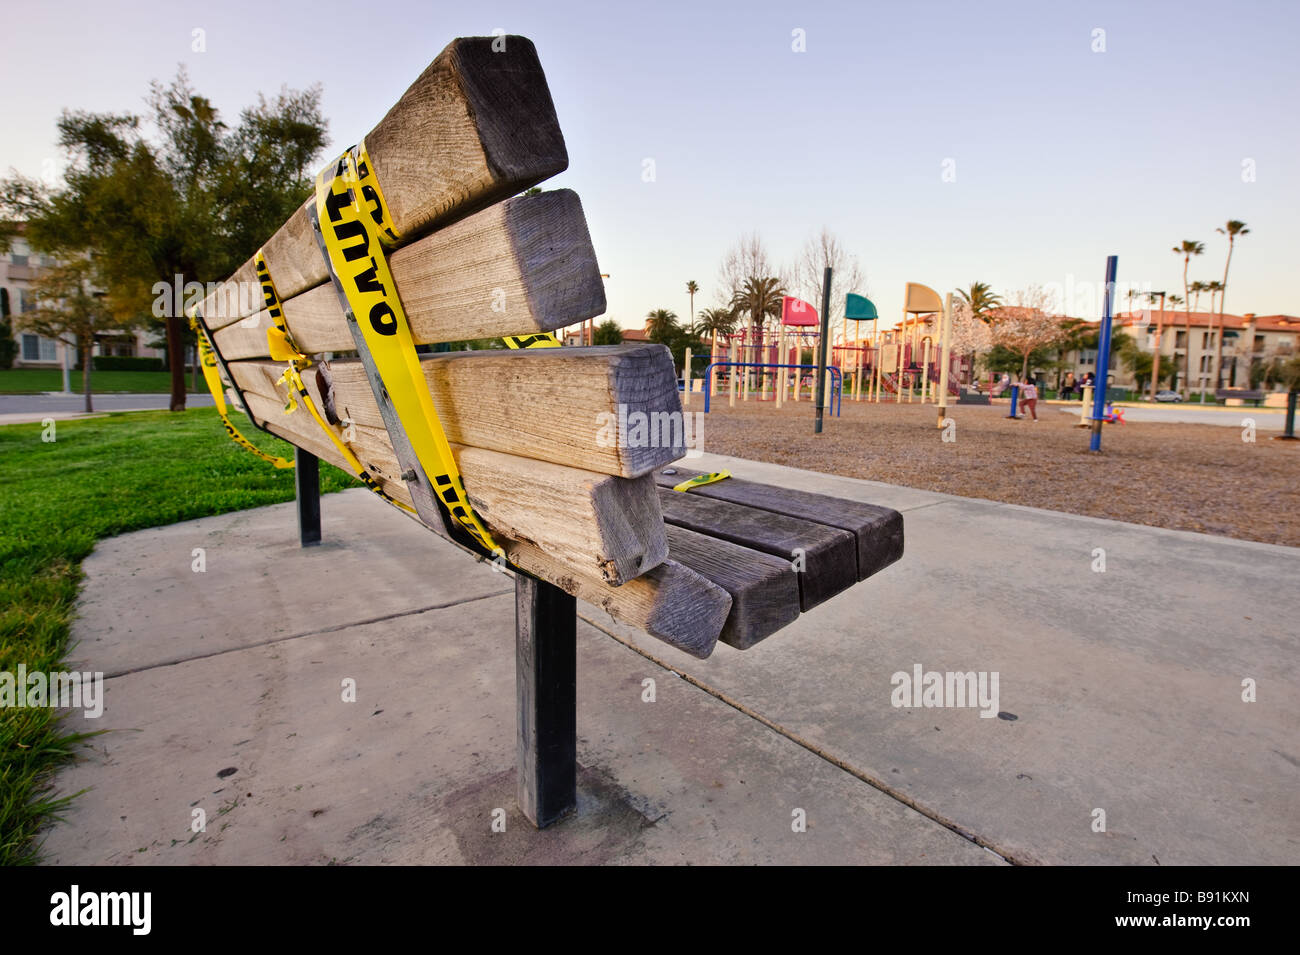 Empty park bench with cation tape wrapped around it with a childrens' playground in the background. - Stock Image